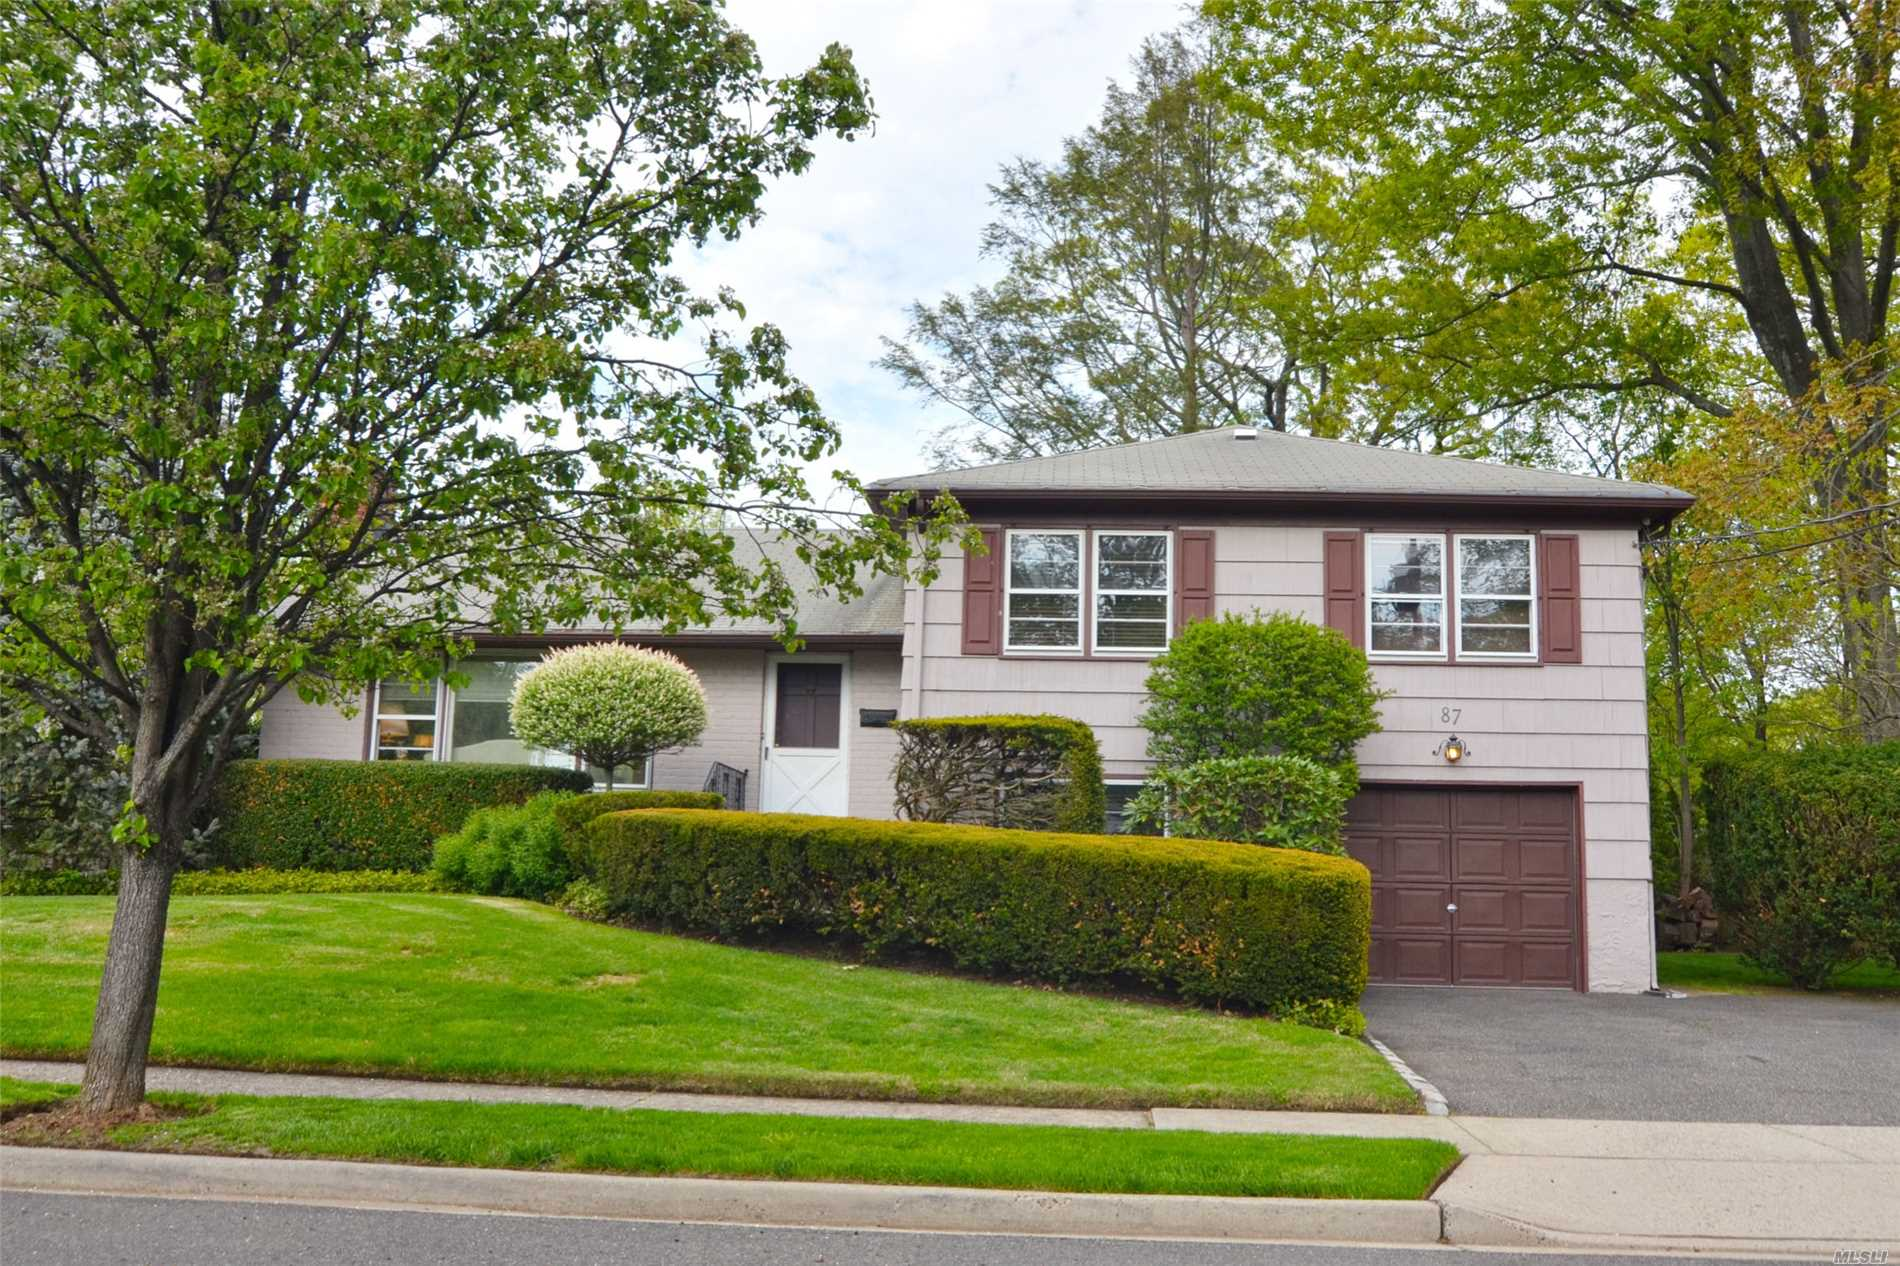 Desirable peaceful Morewood Oaks 4 bedroom 2.5 bath Split close to school and shops. New heating system. Oil tank in basement.